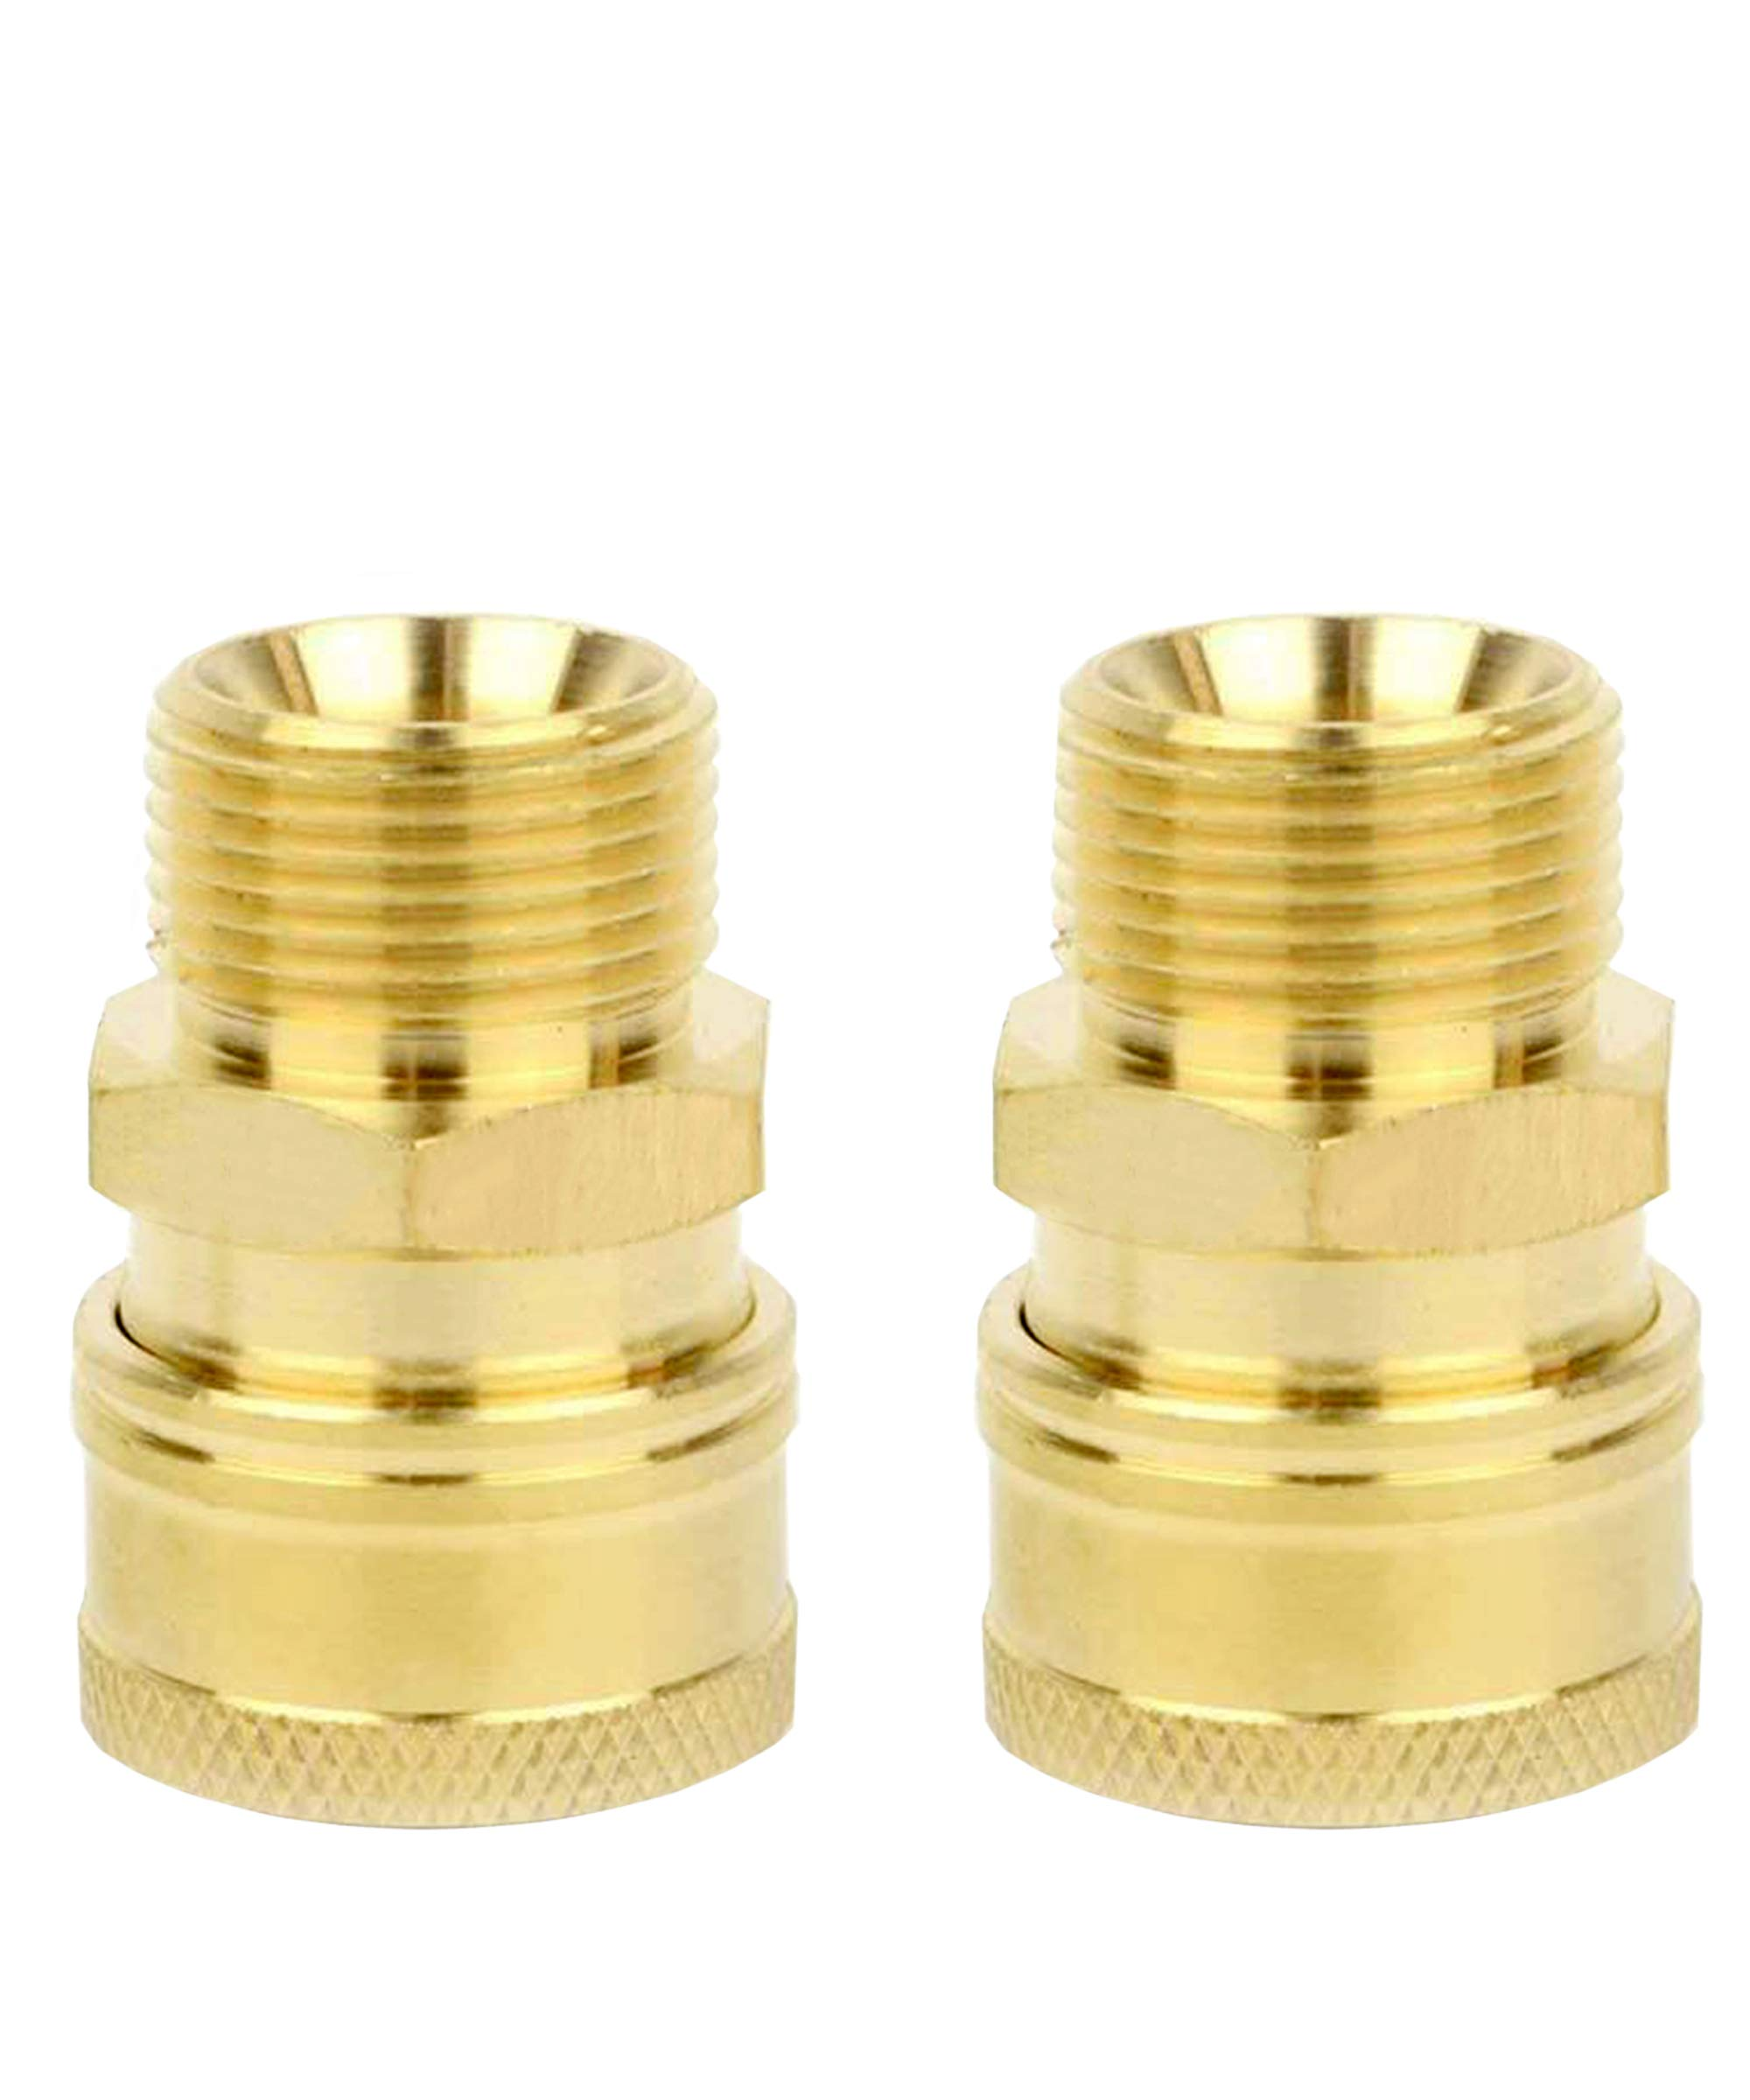 Pressure Washer Quick Connect Brass Pressure Washer Coupler 2 Pack M22 Male 2700 PSI Pressure Washer Hose Adapter Quick Disconnect Water Hose Fittings Pressure Washer Fittings Super-Deal-Shop by Pneumatics